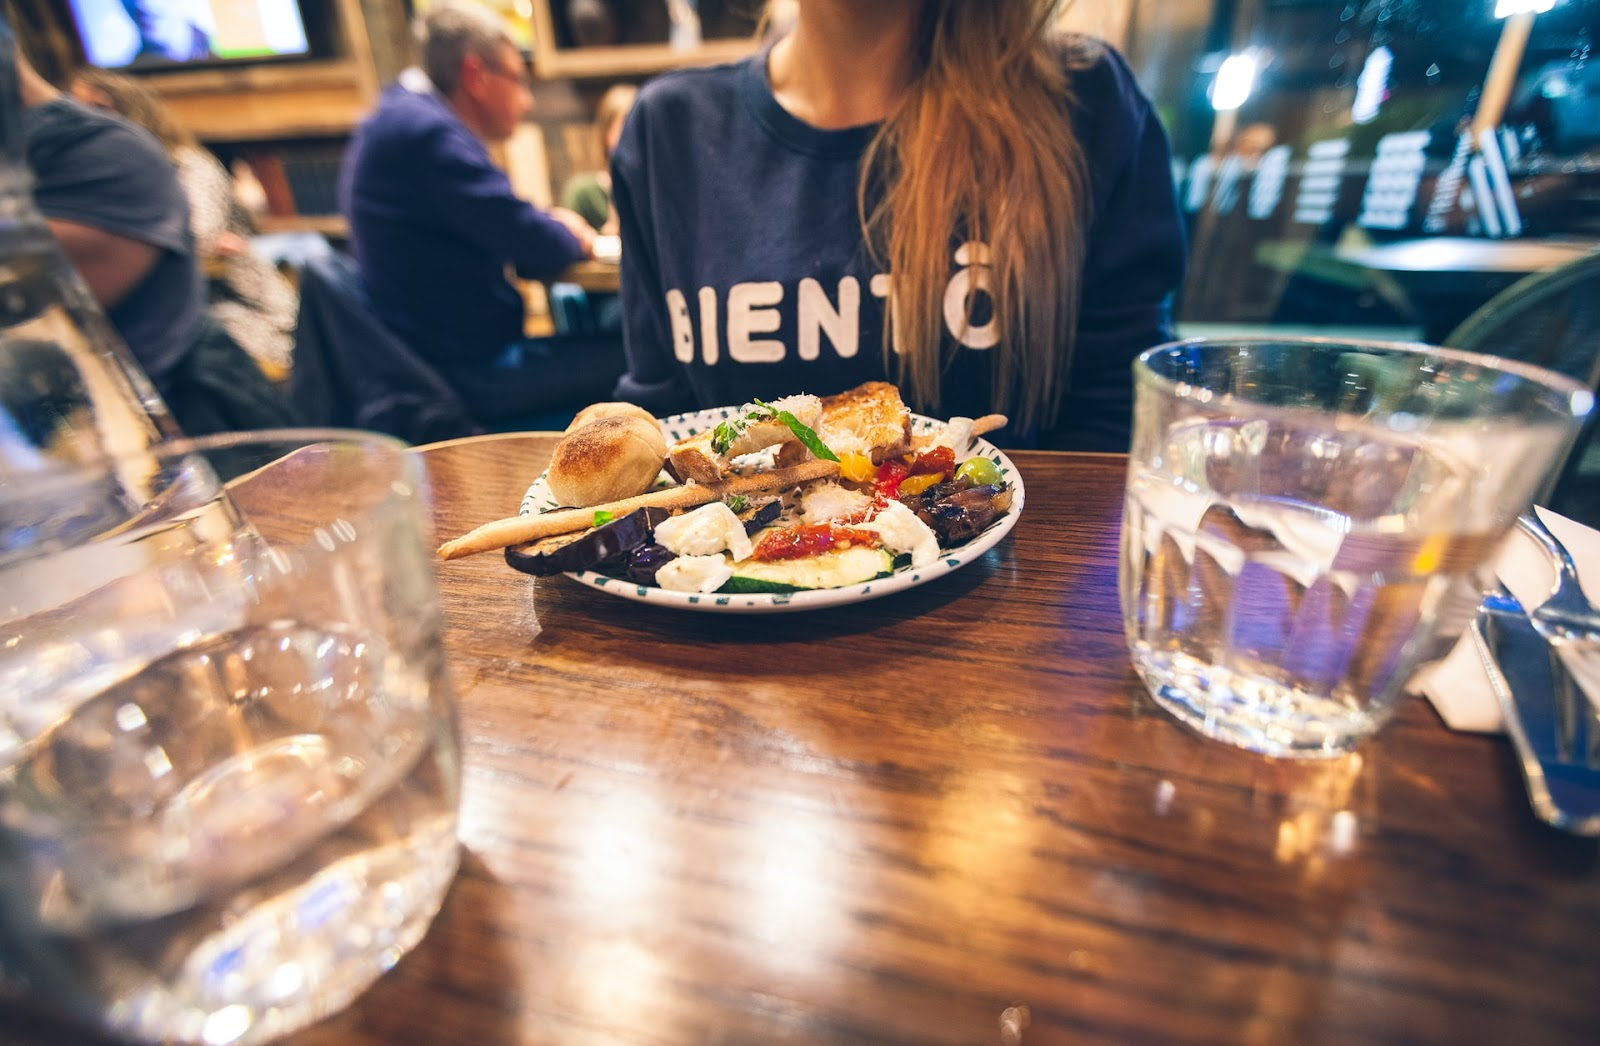 Image of person dining at restaraunt